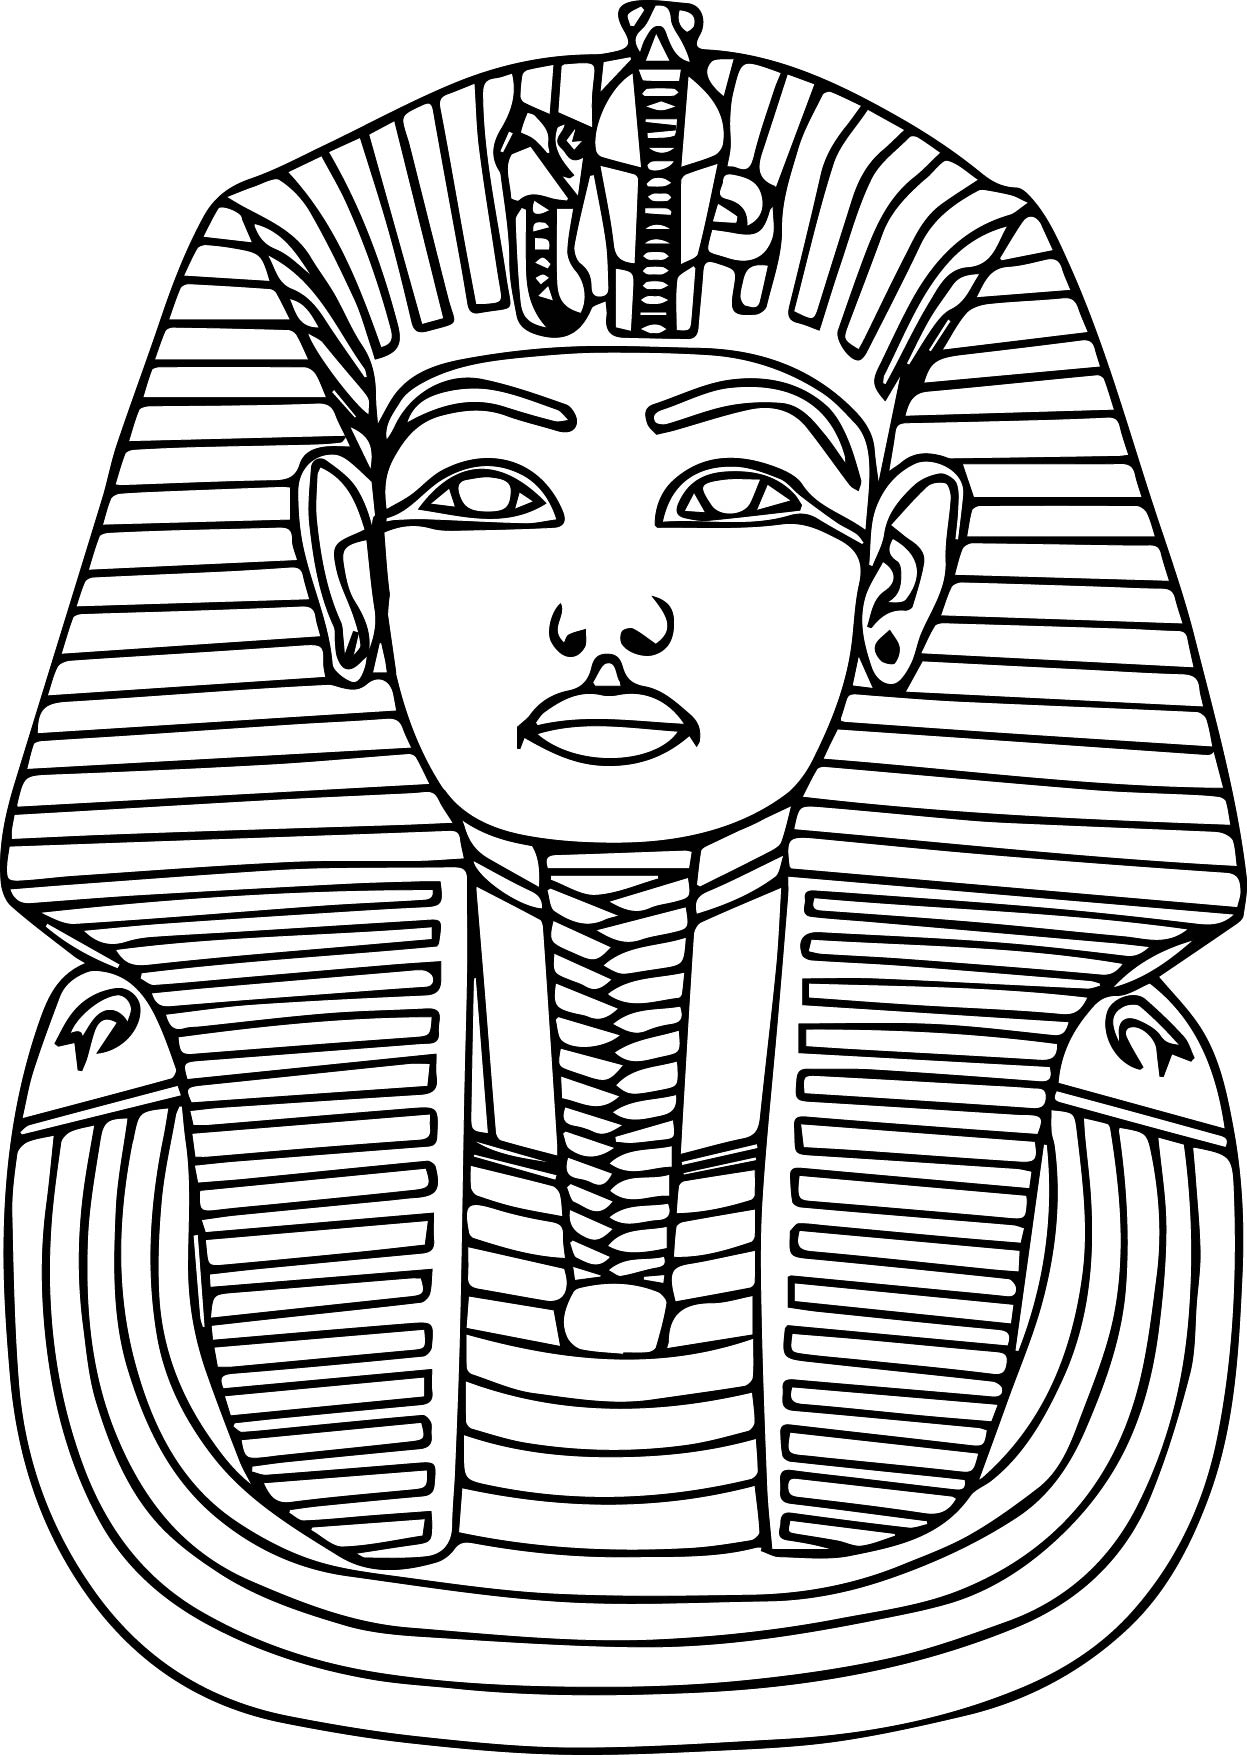 1247x1755 Plagues Of Egypt Coloring Sheet To Print History Egyptian Page